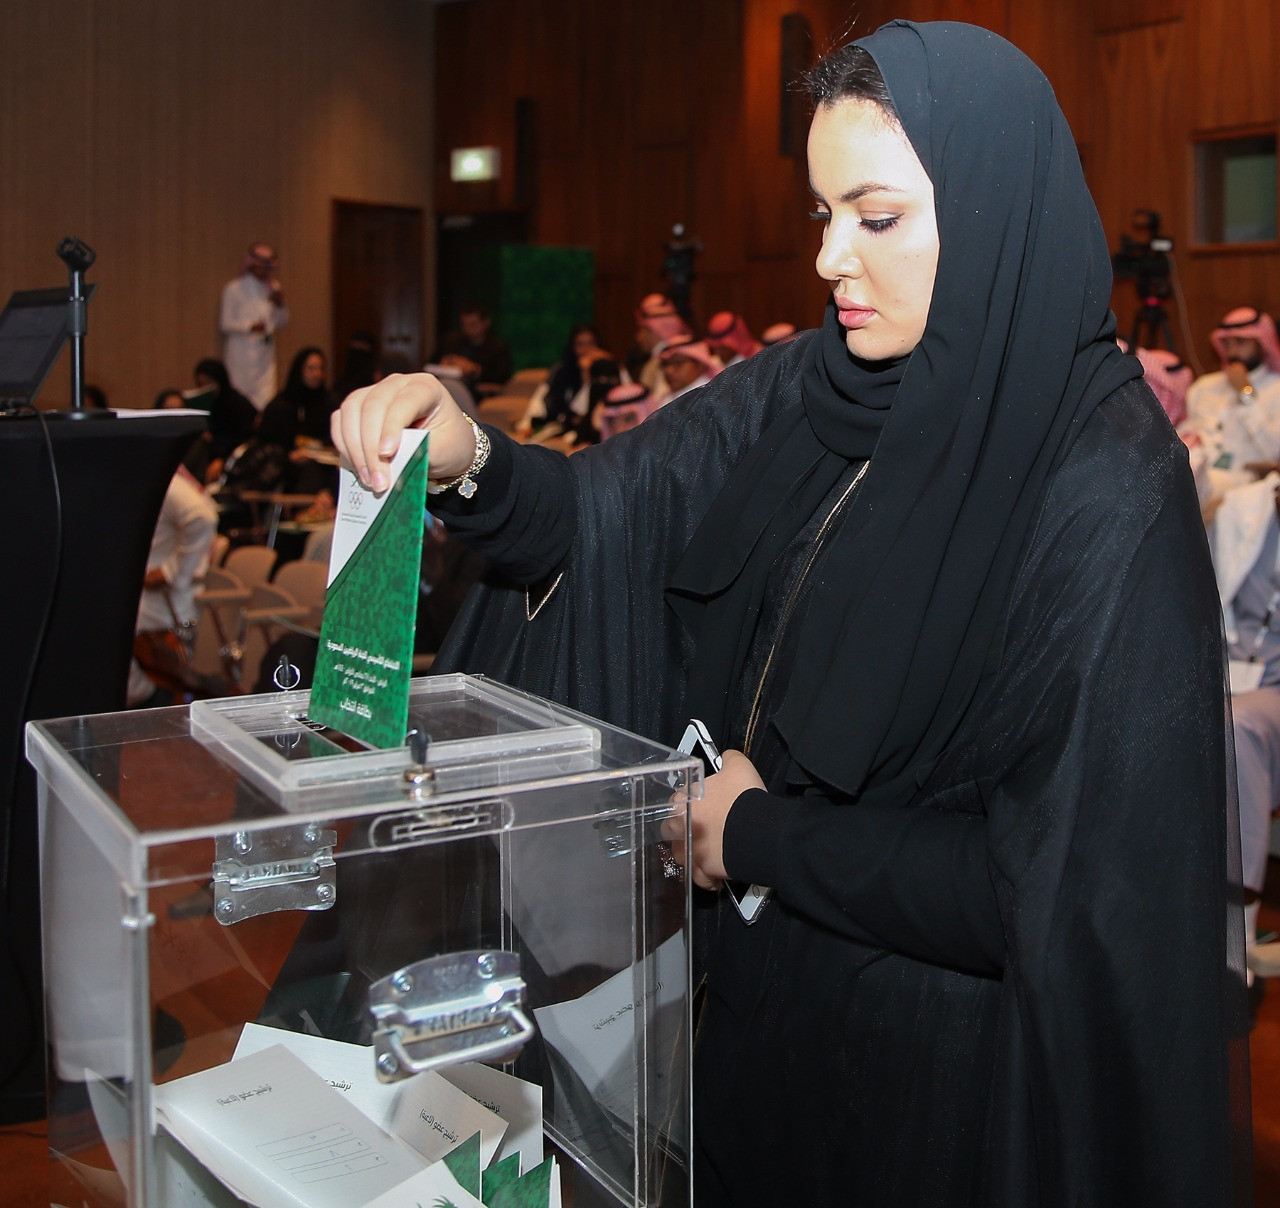 A vote is cast during the election ©SAOC